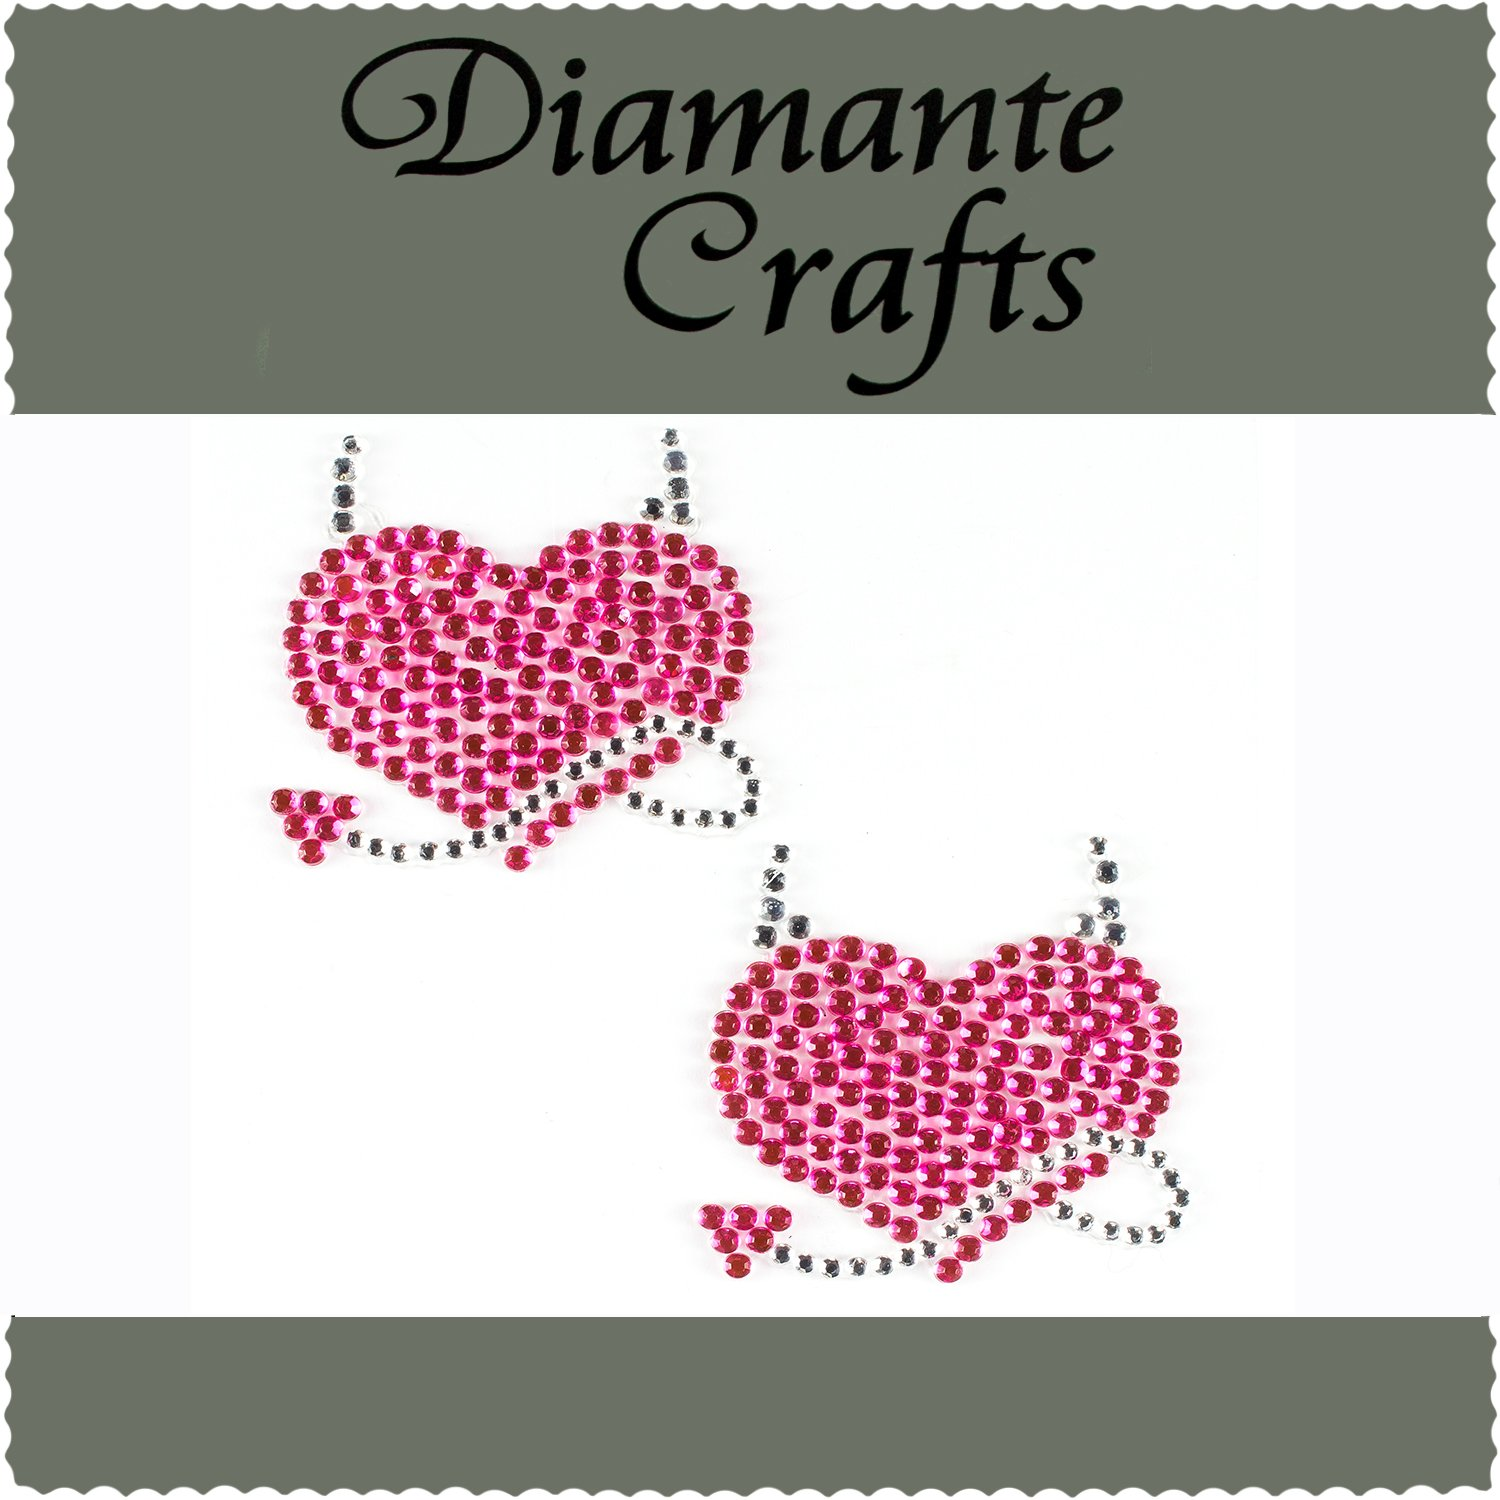 2 Hot Pink & Clear Diamante Devil Hearajazzle Rhinestone Body Art Gems - created exclusively for Diamante Crafts